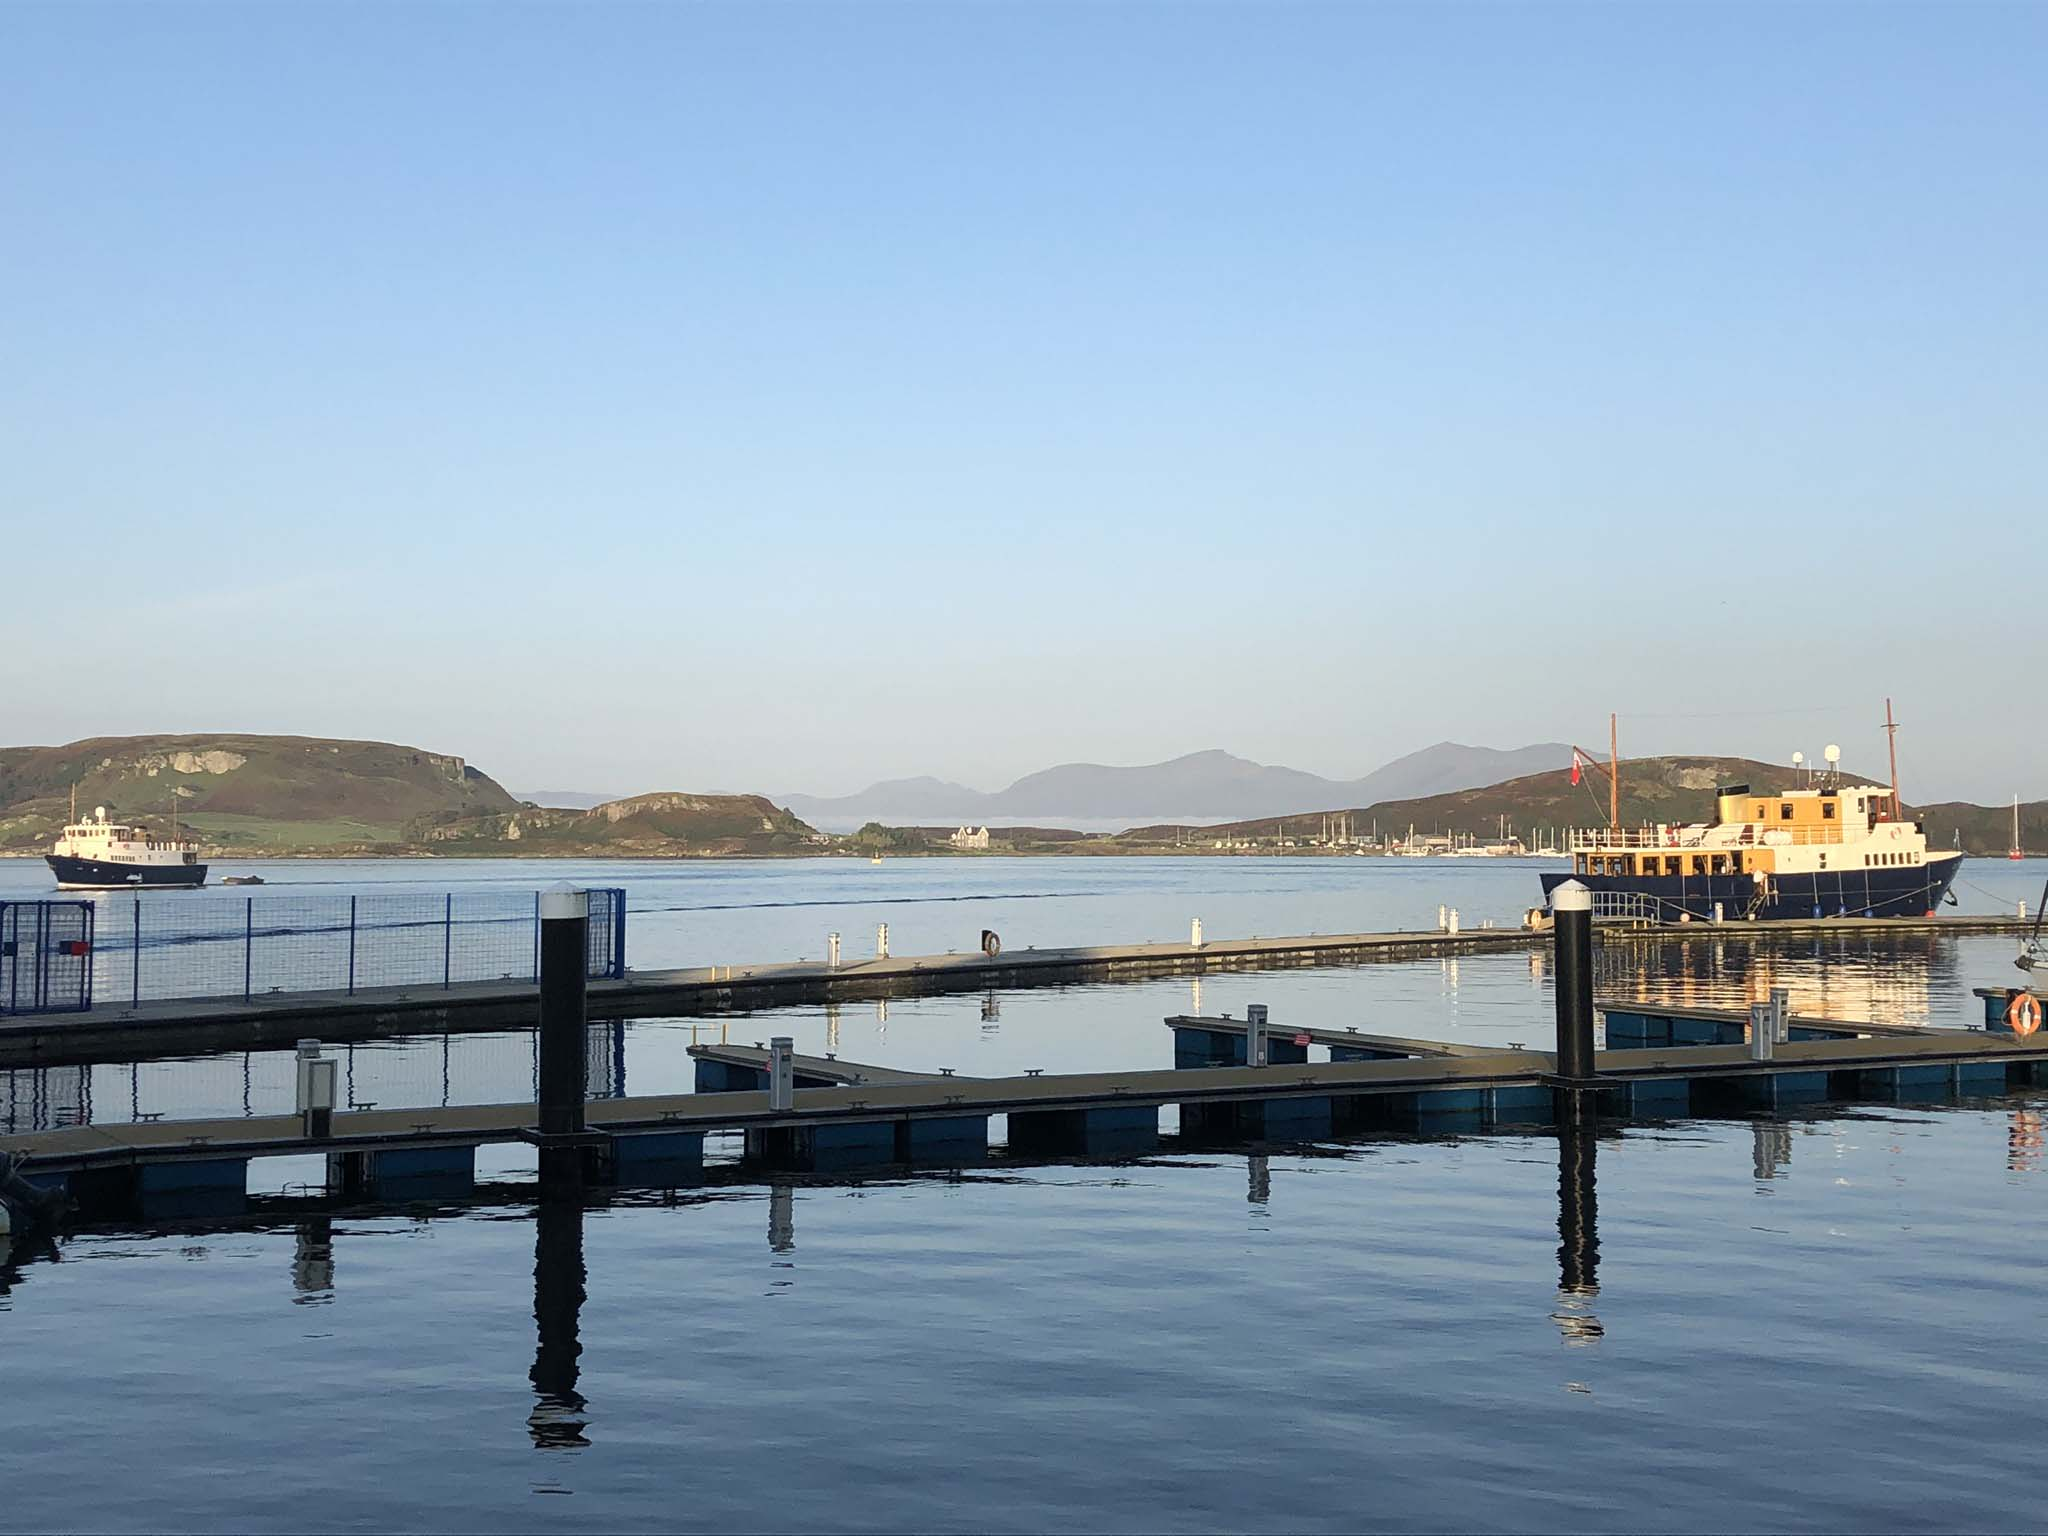 The quiet of the morning in Oban